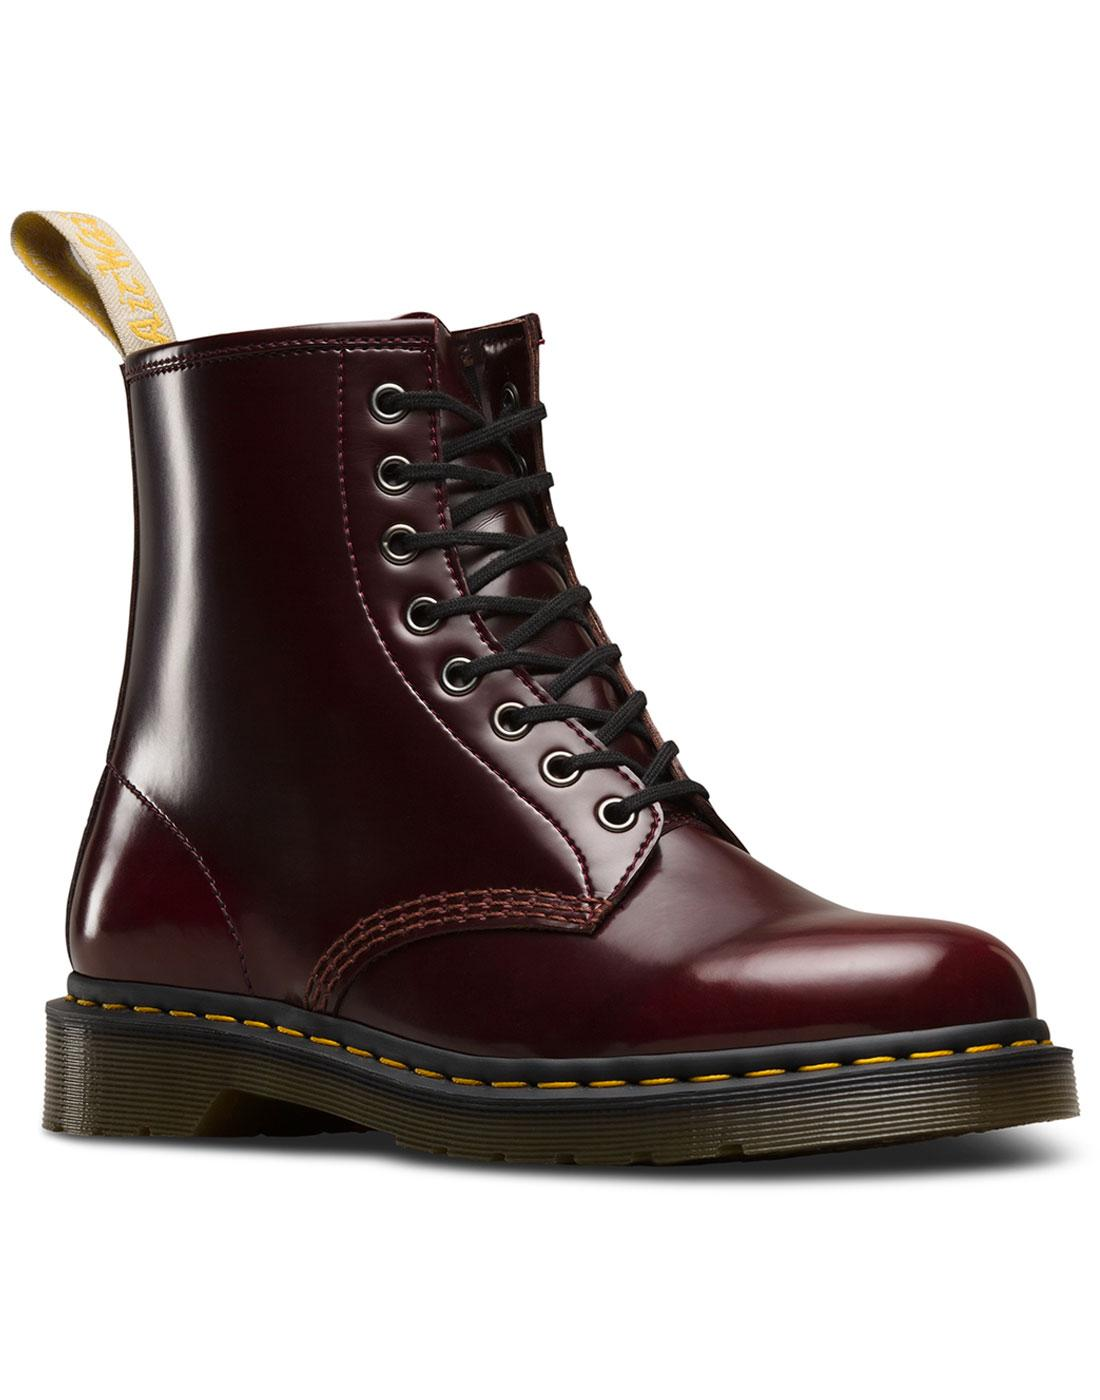 1460 Cambridge Brush Vegan DR MARTENS Retro Boots